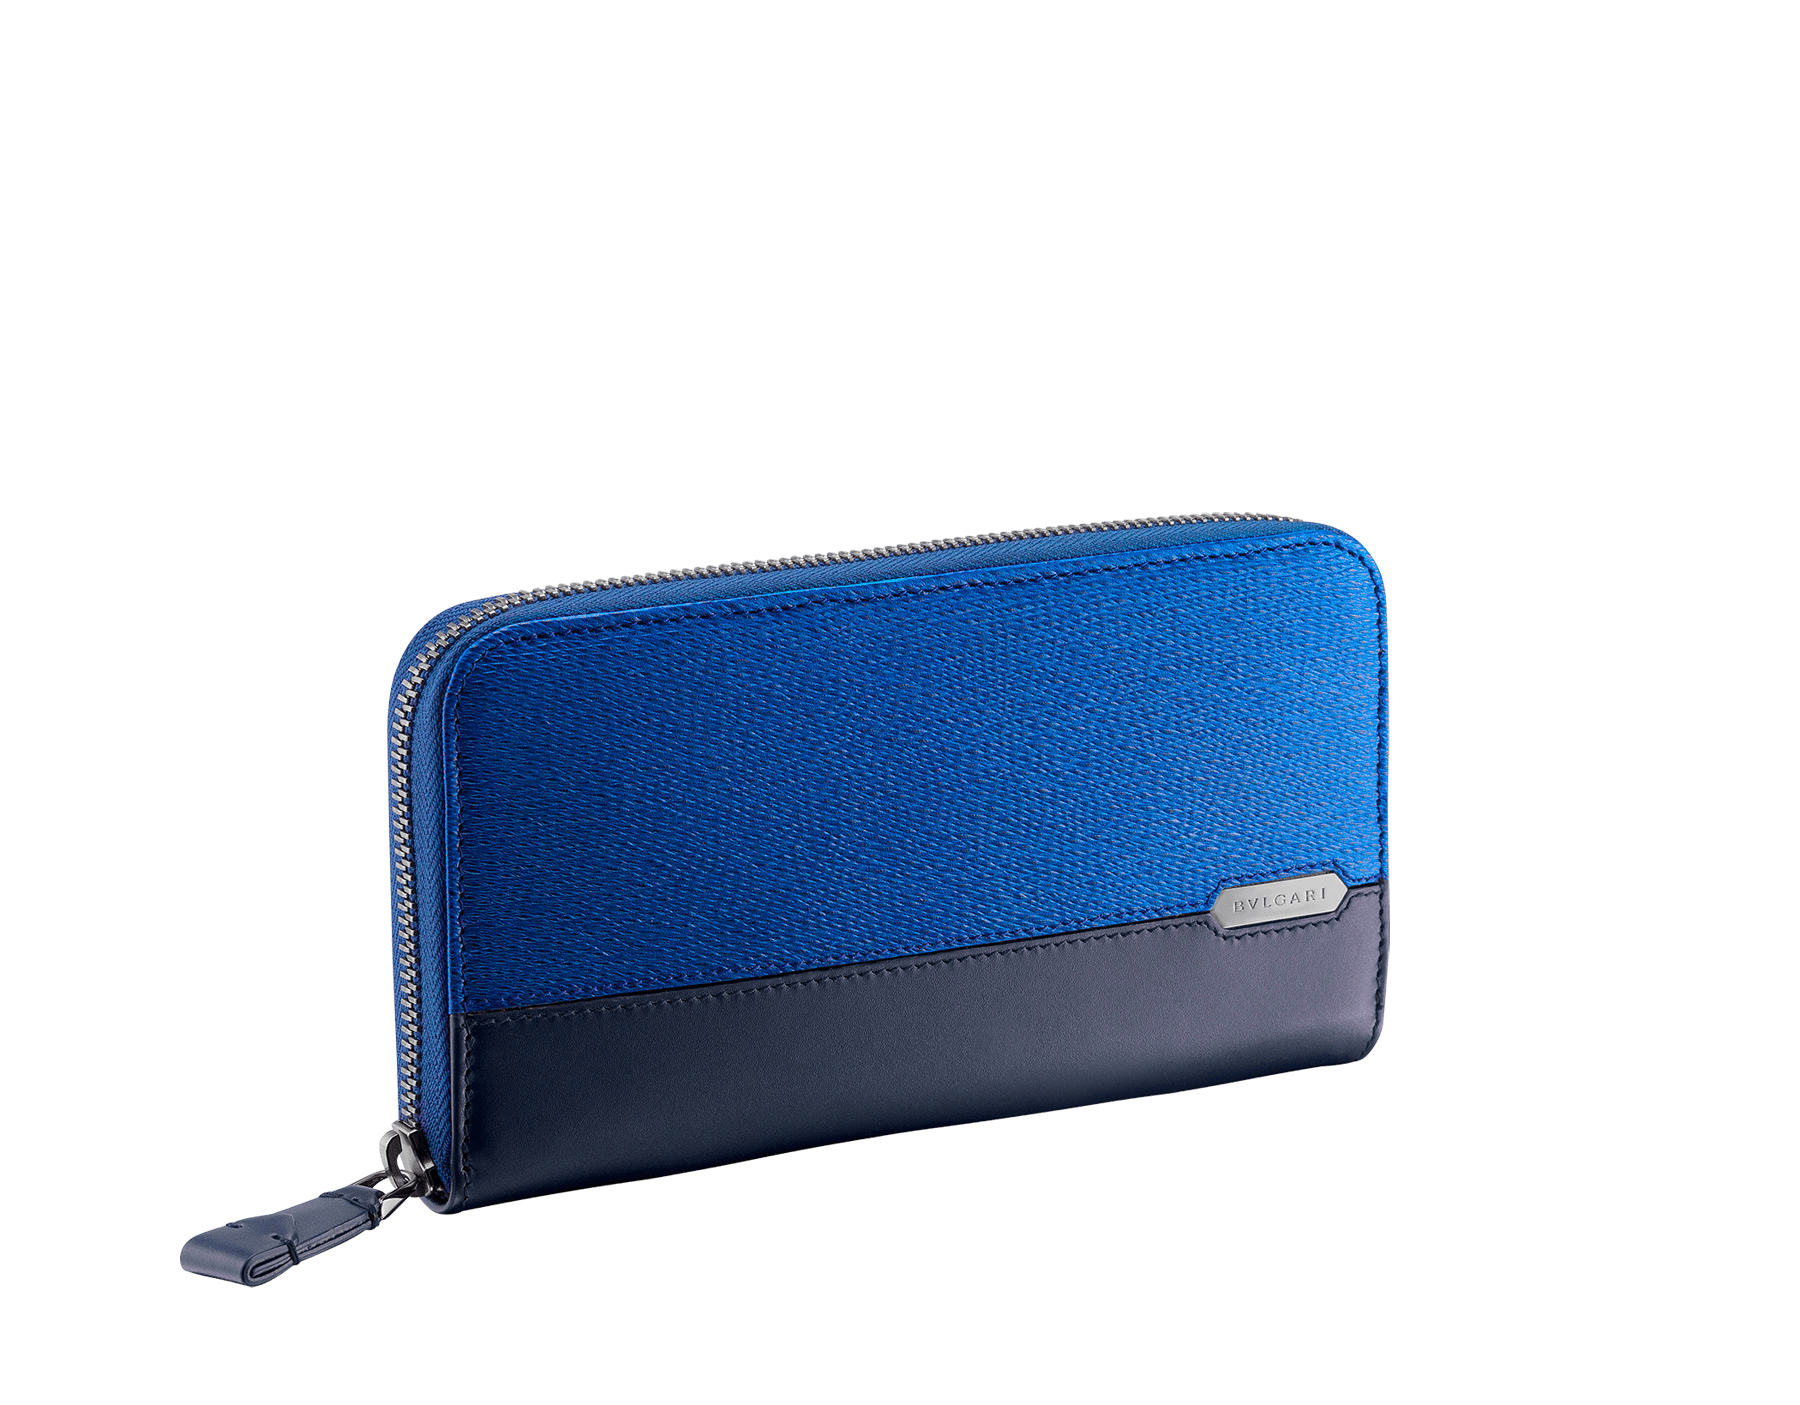 Serpenti Scaglie men's zipped wallet in cobalt tourmaline grazed calf leather and dark denim calf leather. Bvlgari logo engraved on the hexagonal scaglie metal plate finished in dark ruthenium. 288604 image 1